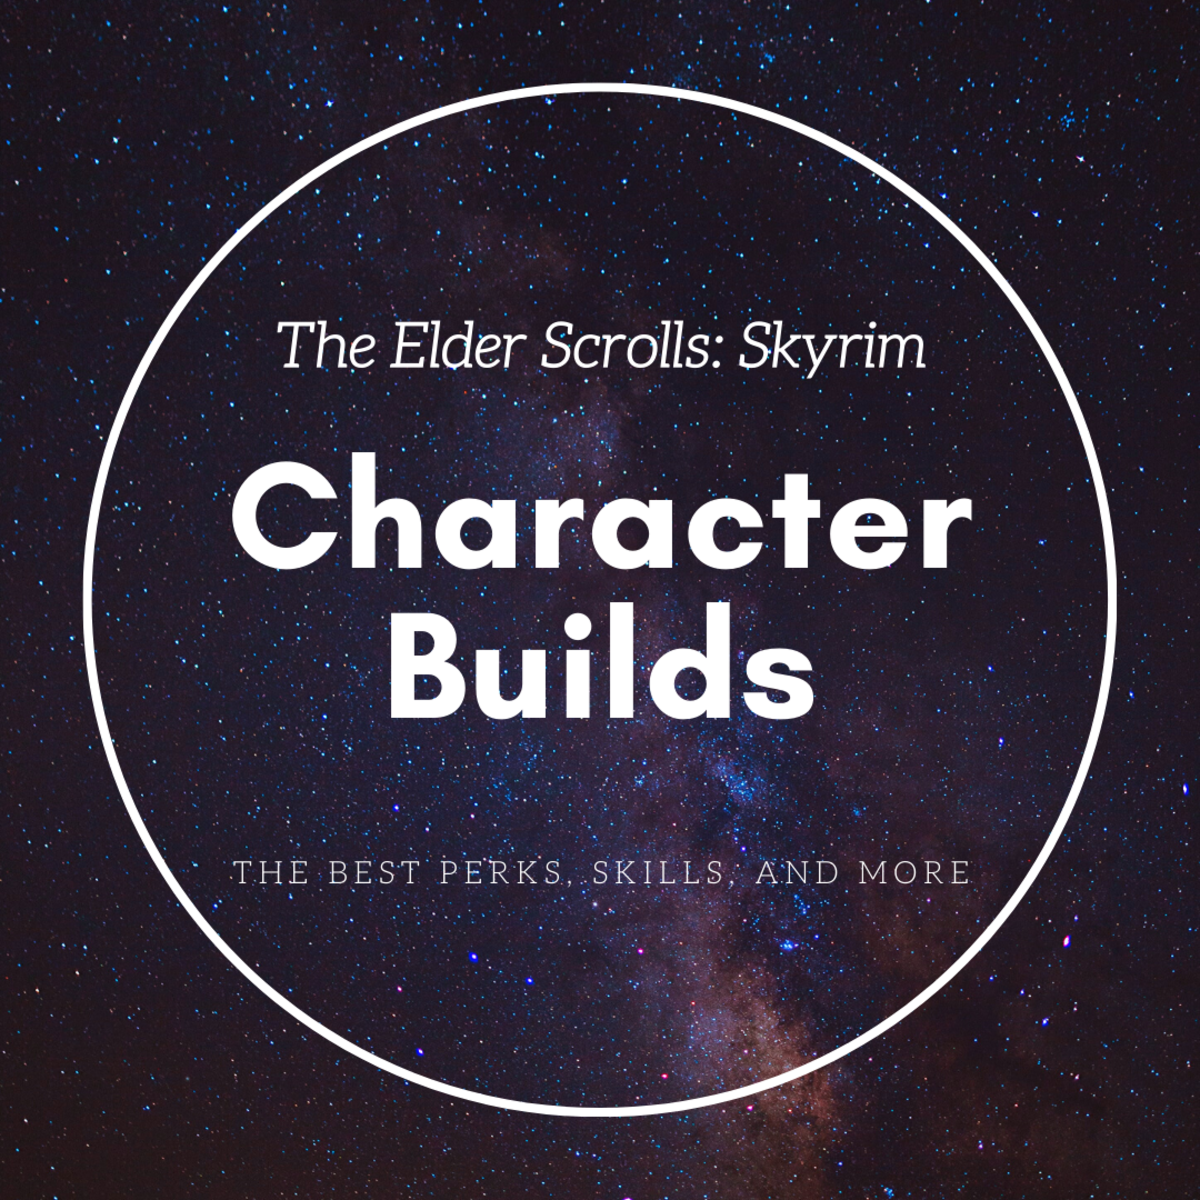 Follow this guide for some great character builds to start your adventure right.